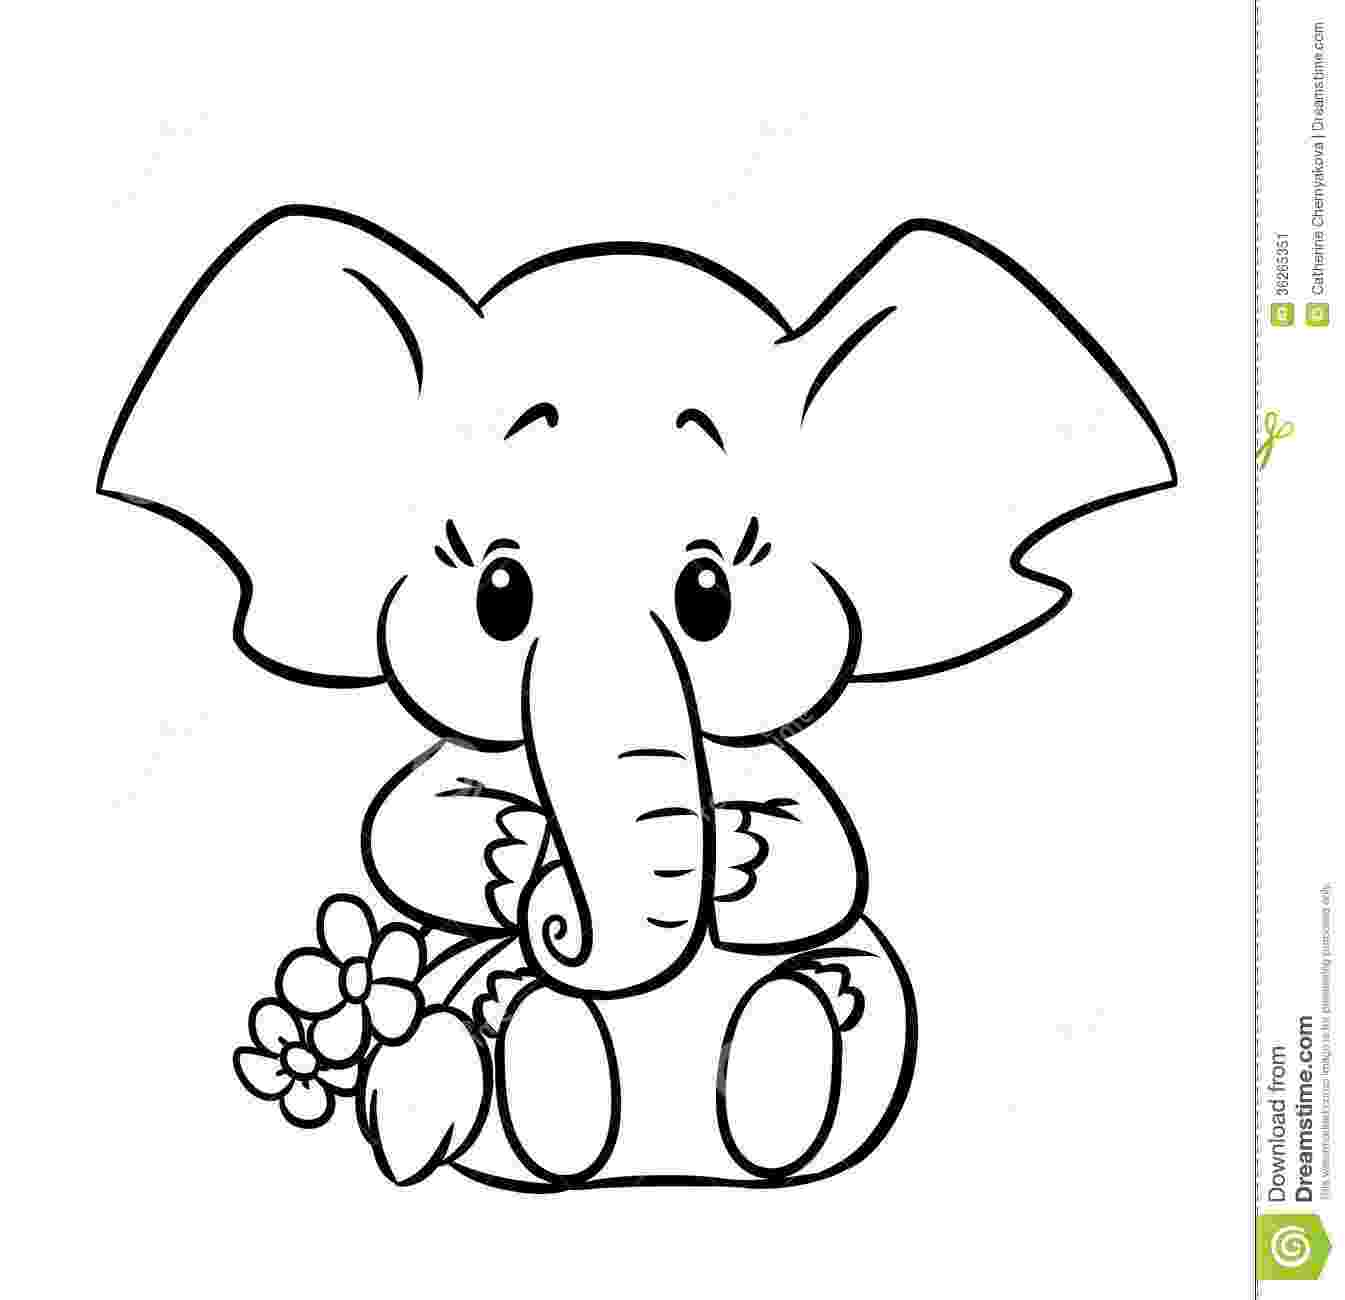 elephant color sheet baby elephant coloring pages to download and print for free sheet elephant color